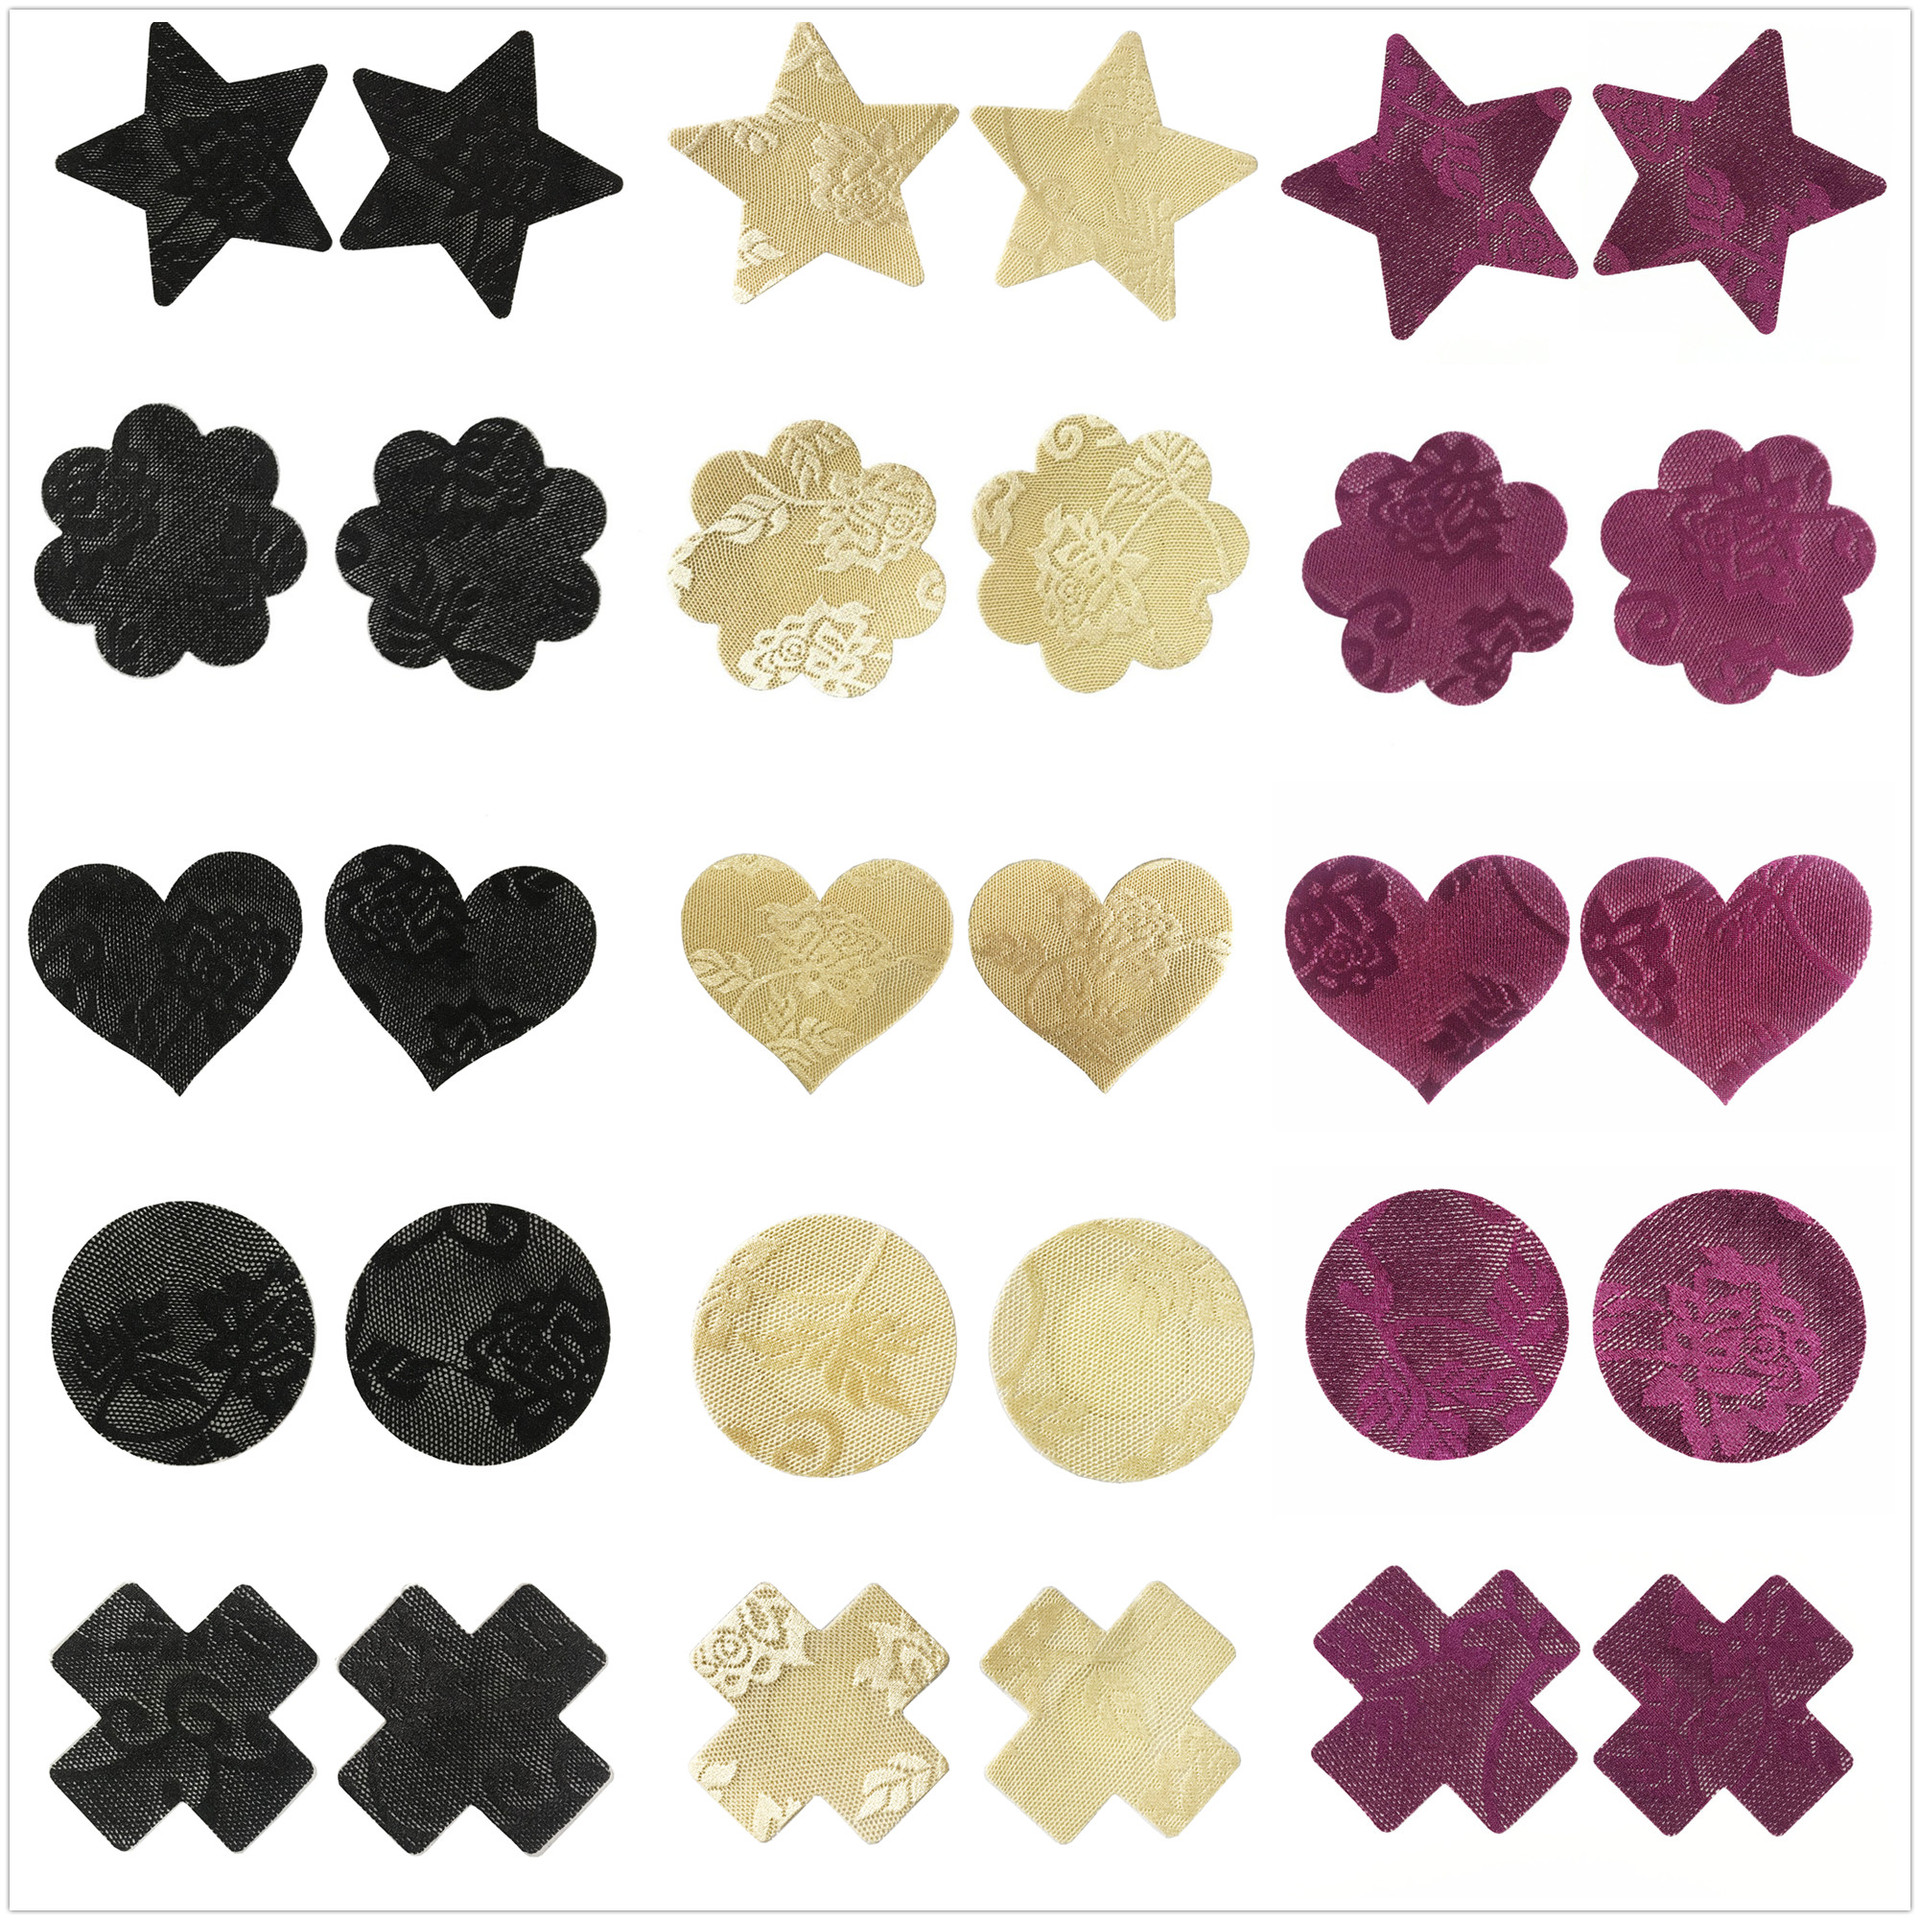 Ypser 15 Pairs Womens Pasties Disposable Satin Nipple Covers Pasty Bra Petals Breast Covers